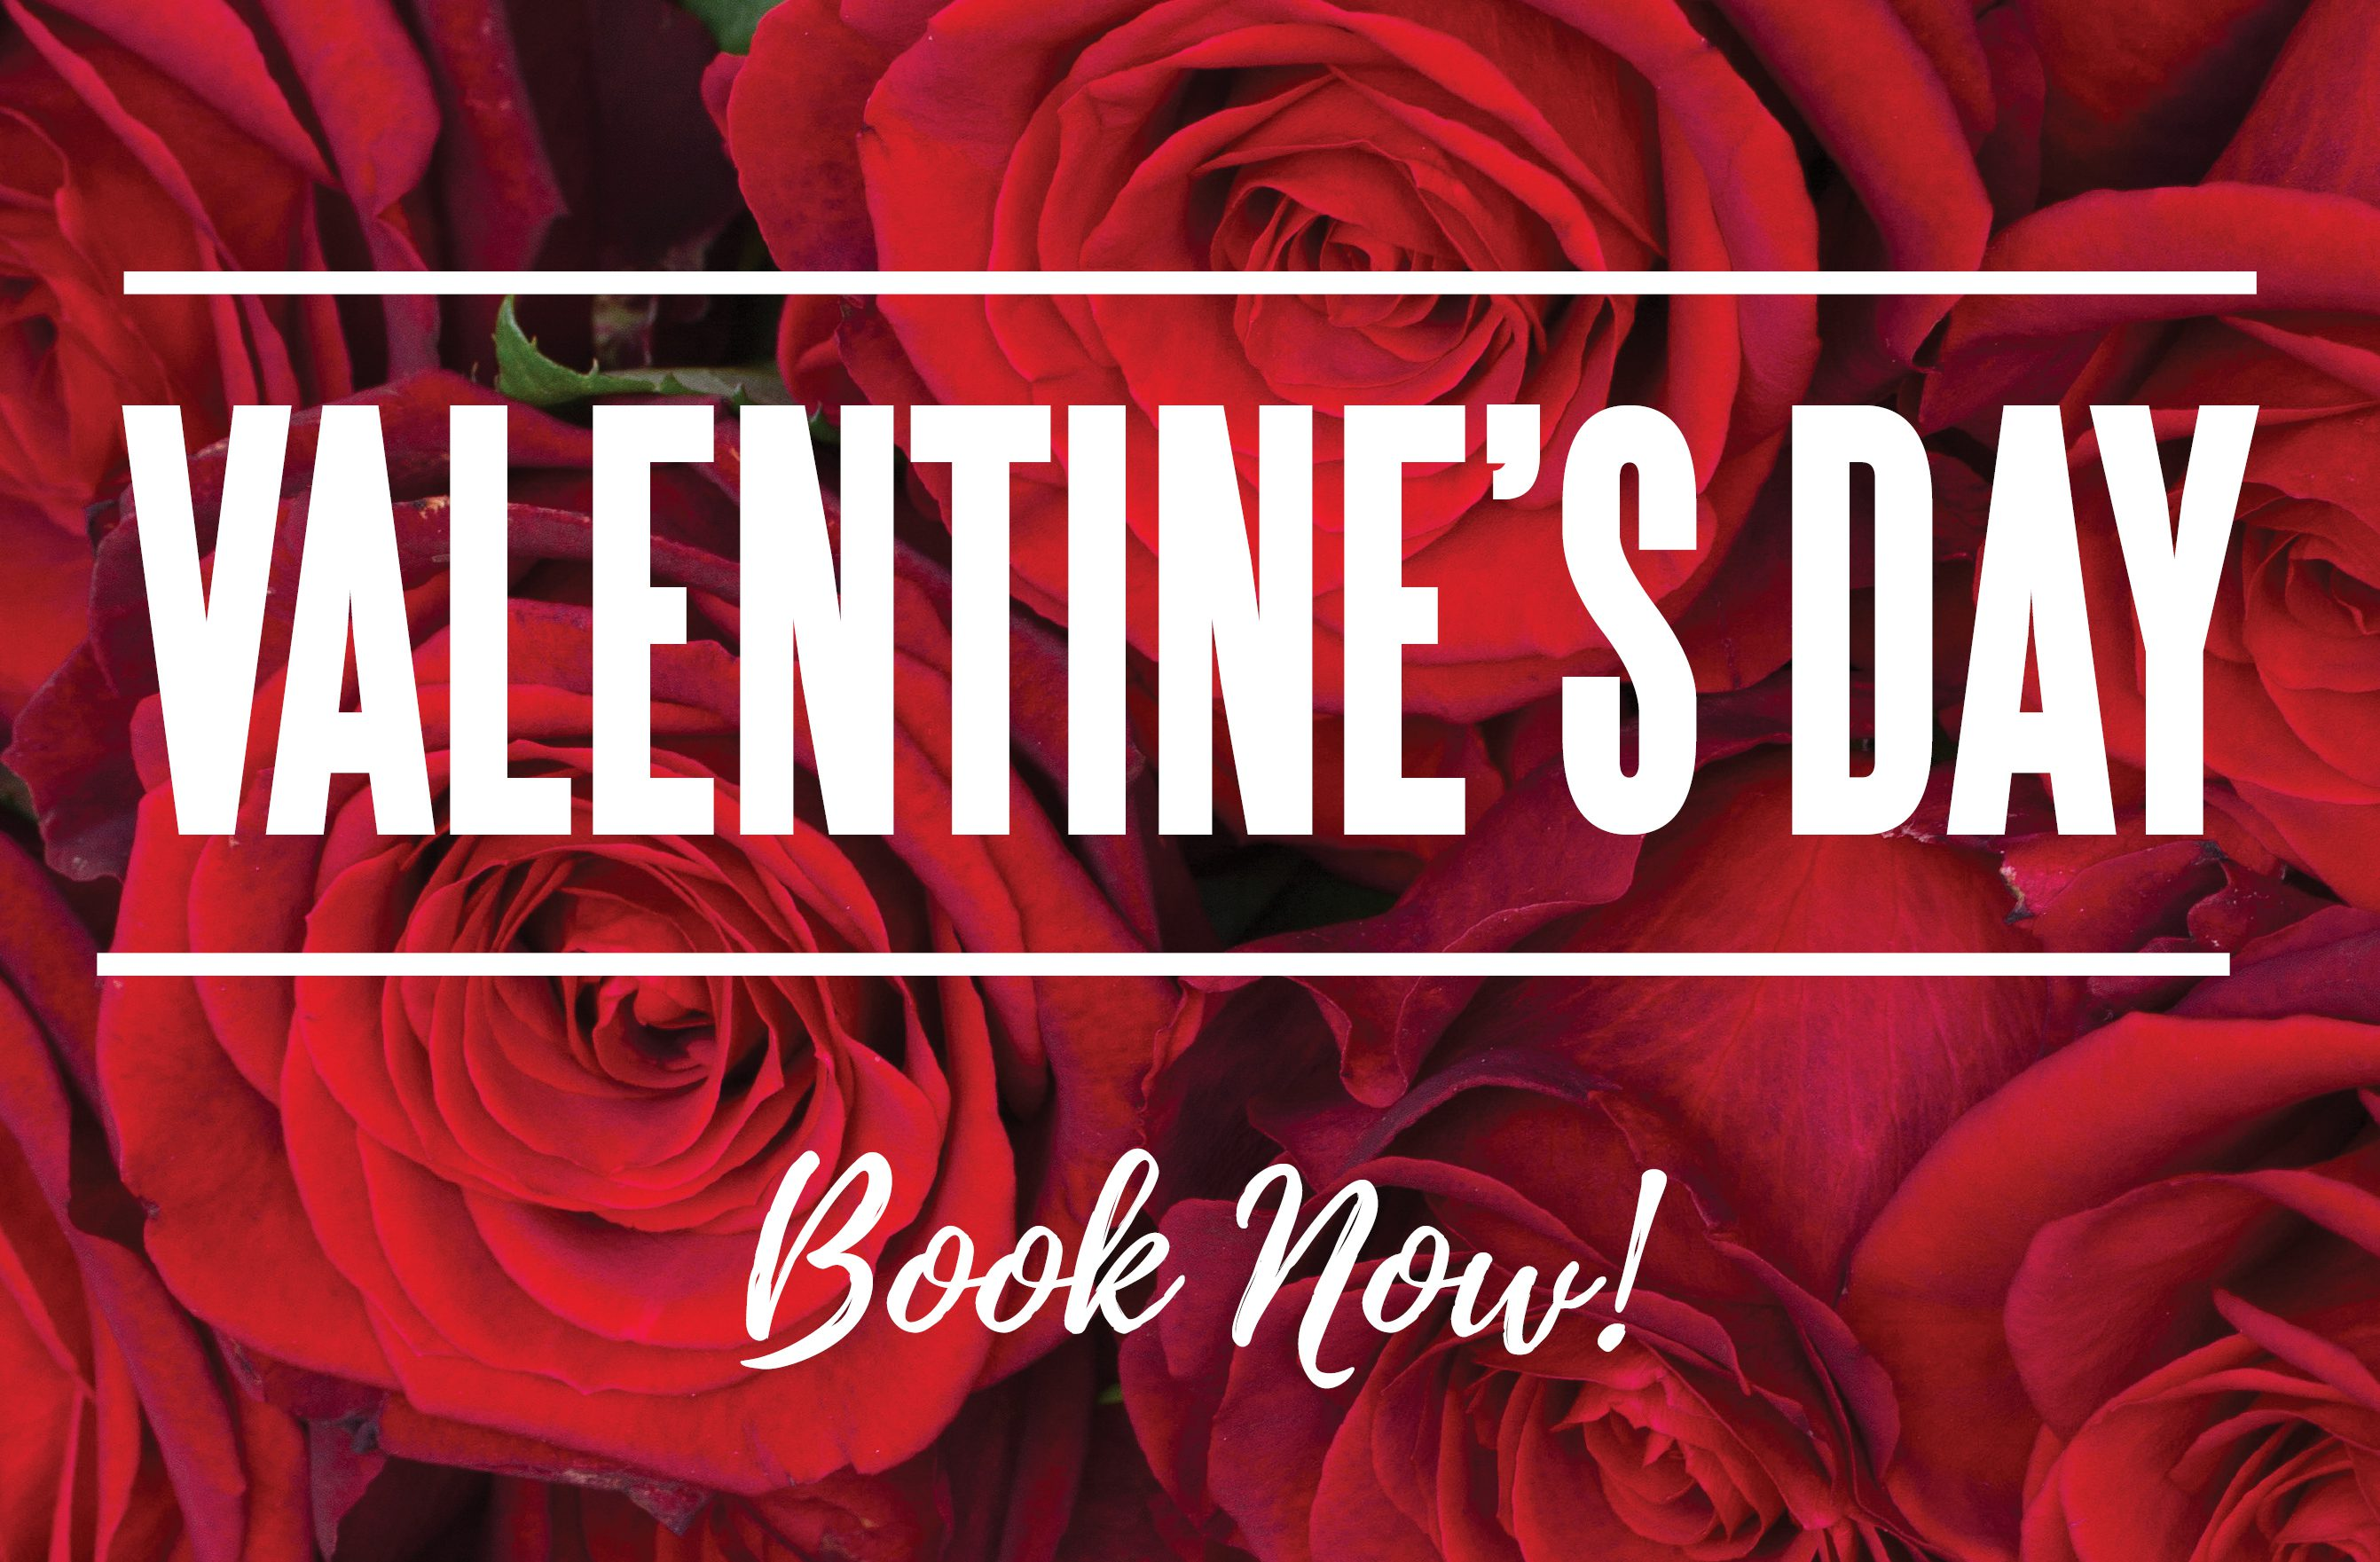 Valentine's Day at Elmar's for lunch or dinner - banner image